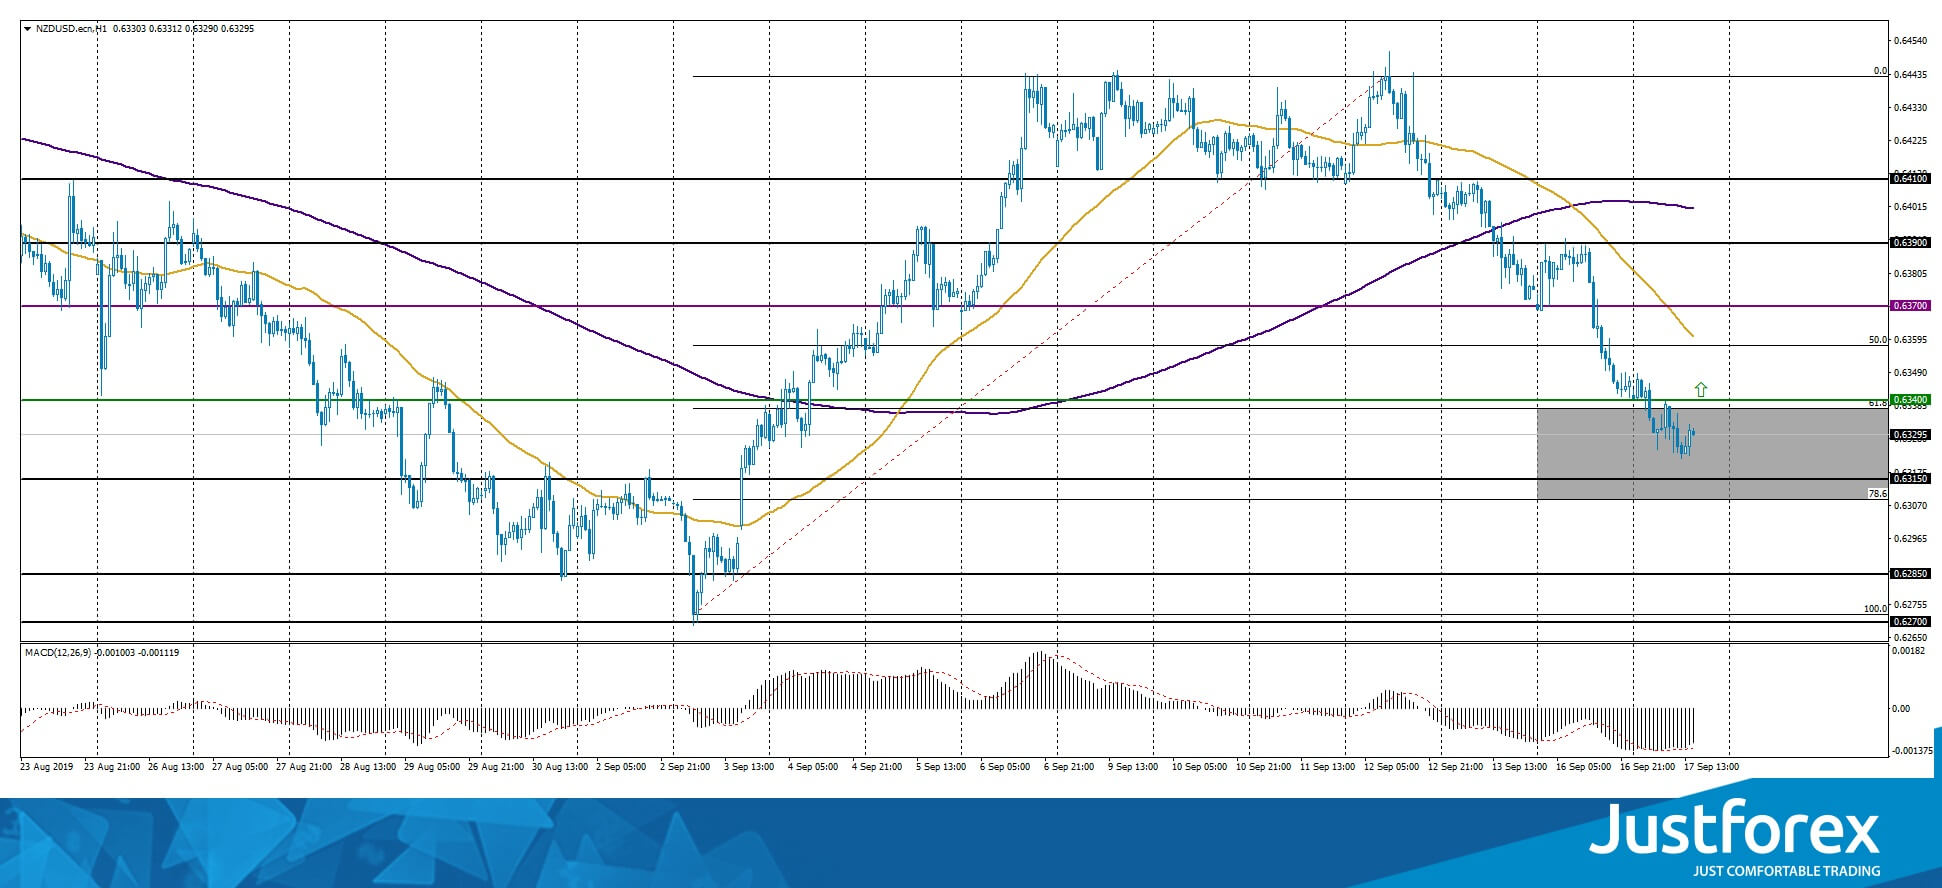 61.8-78.6% Correction Zone on NZD/USD